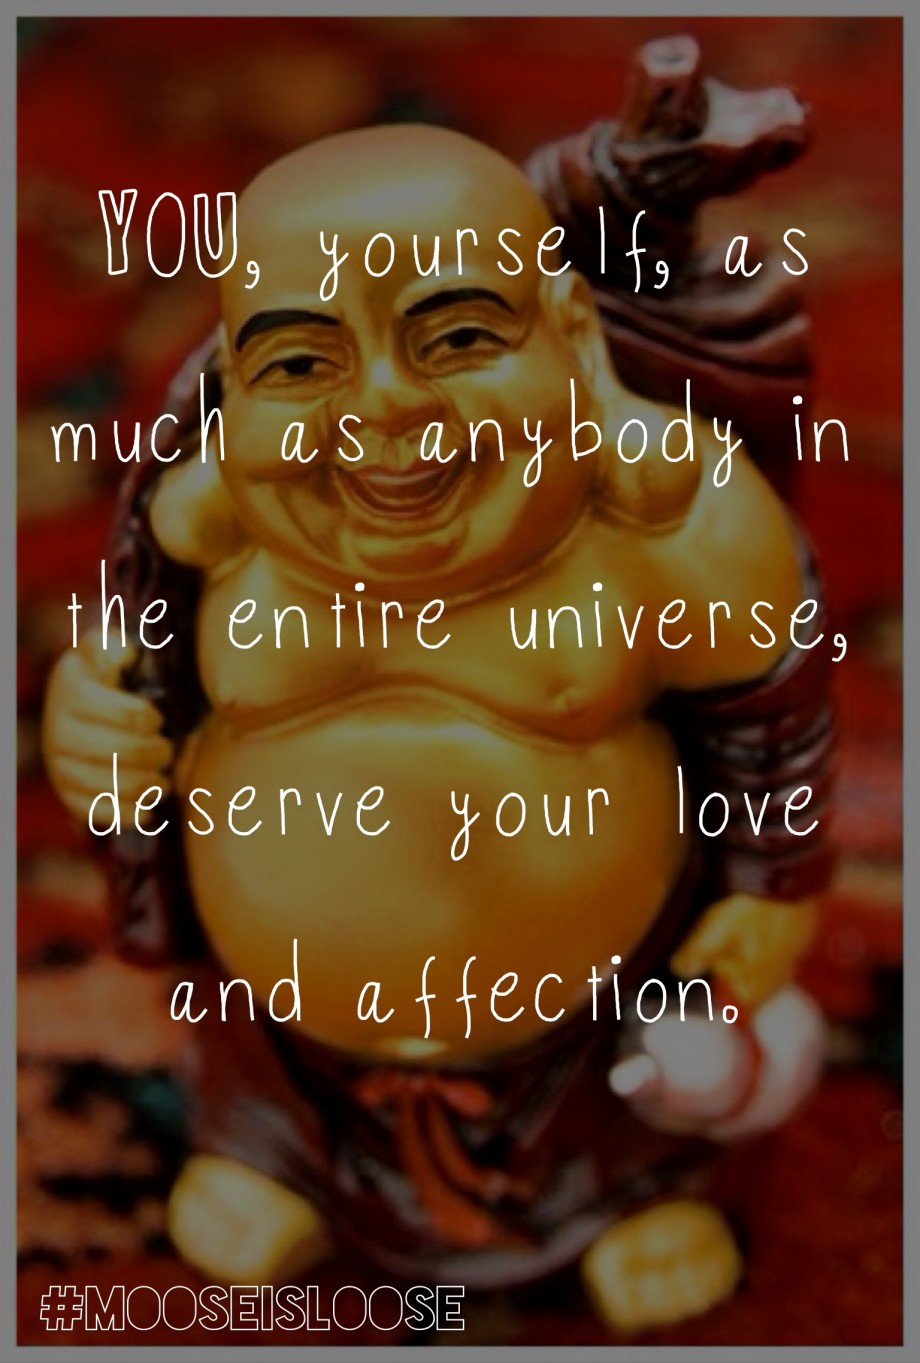 Buddhist Quotes On Love 10 Awesome Buddha Quotes That Will Inspire And Motivate You